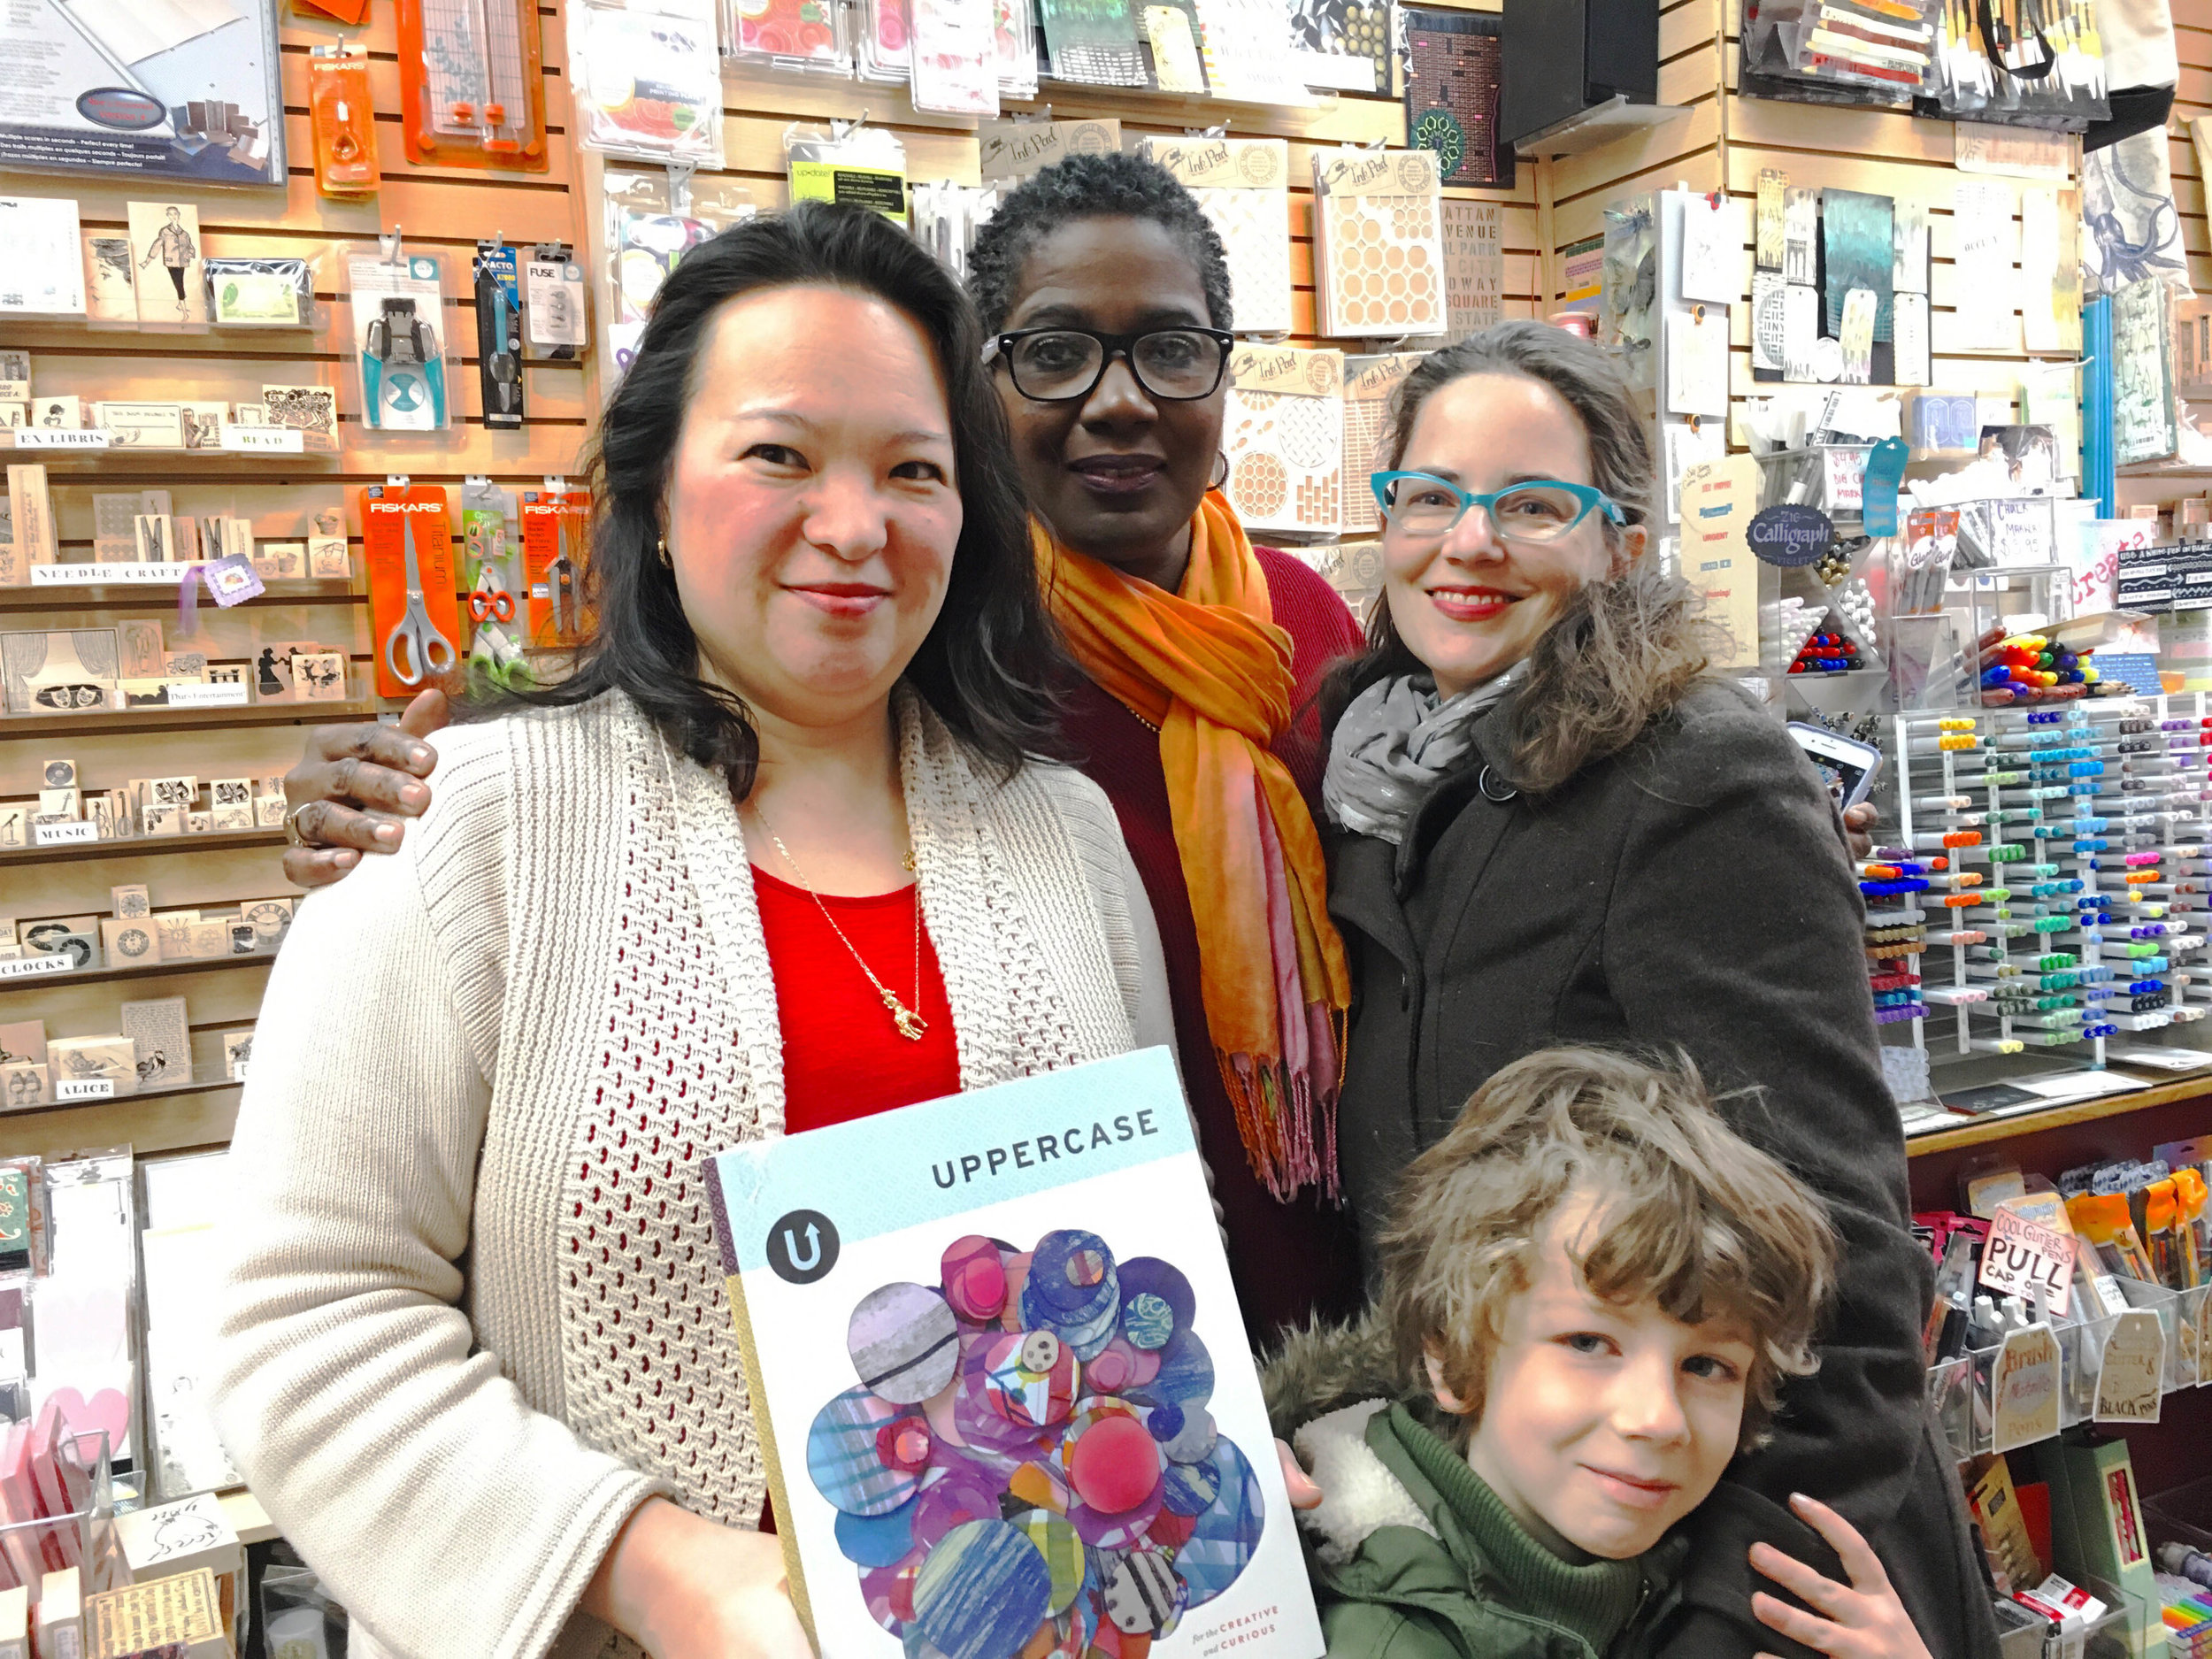 Anna Chiang is the owner of the store—she commutes an hour and a half each day to The Ink Pad. Now that's dedication! Patrice, in the middle, created some of the stamped card designs on display throughout The Ink Pad.